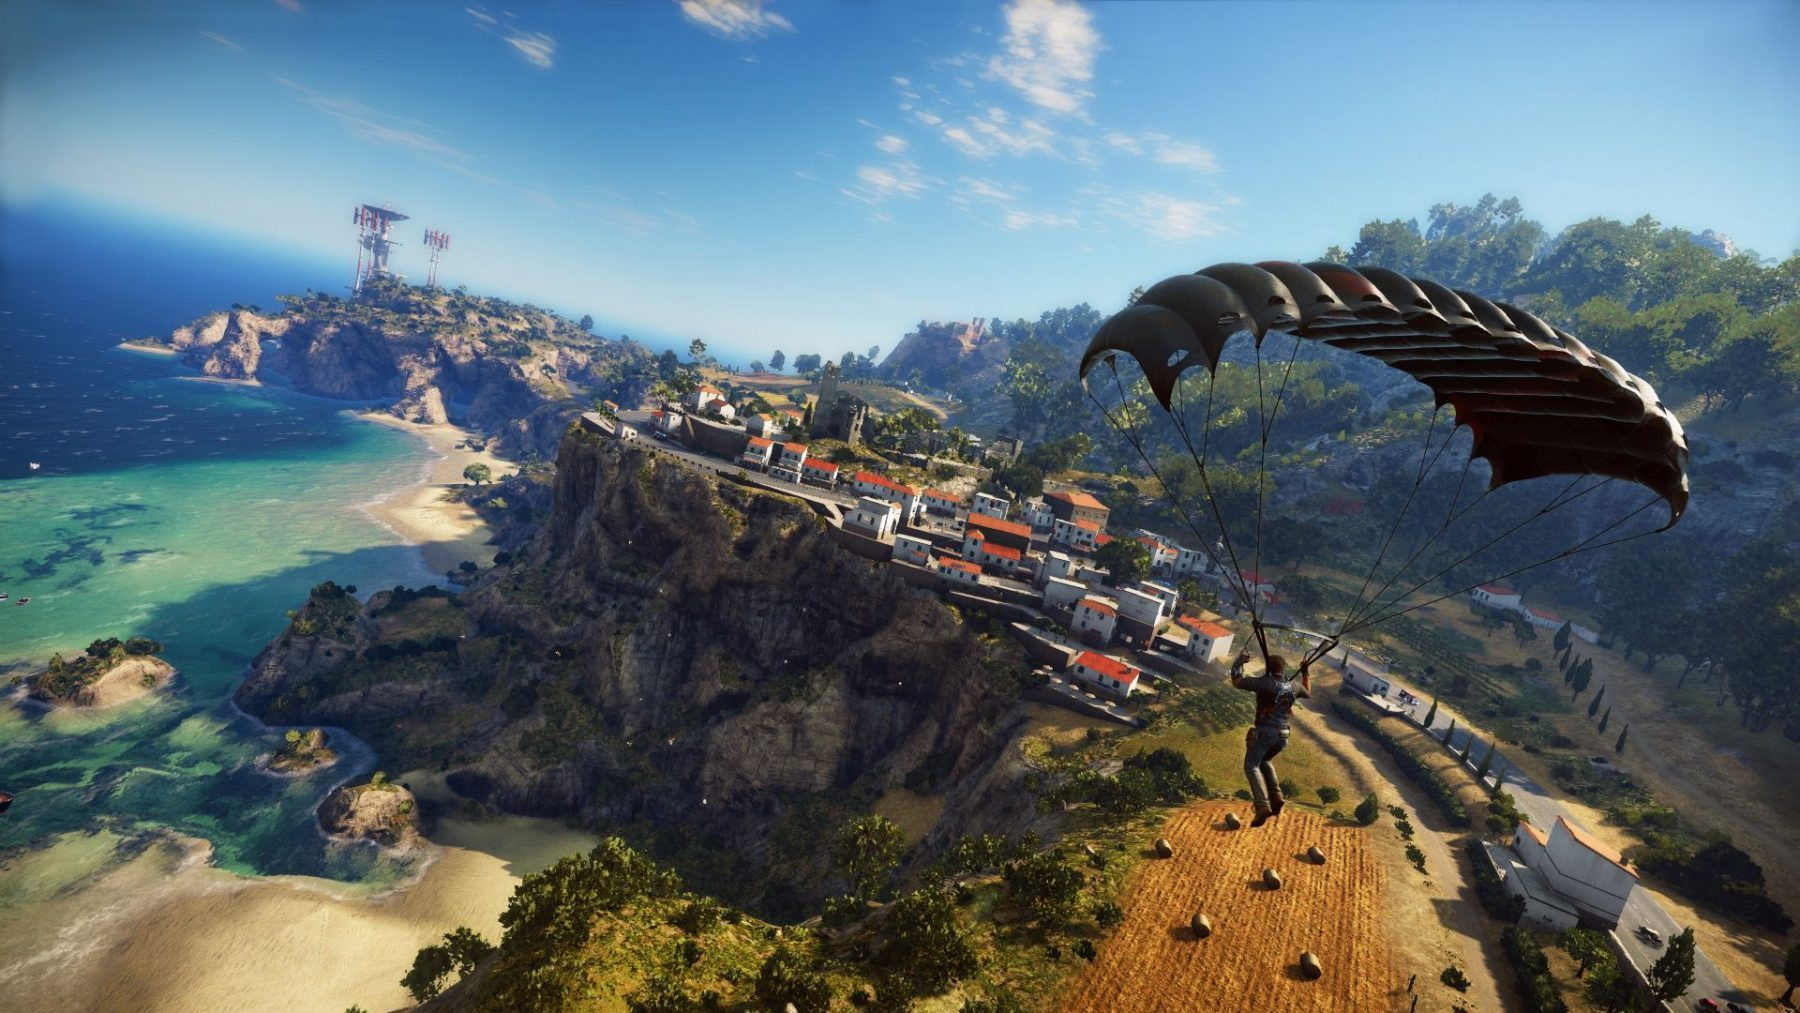 Parachute_over_town_1.0